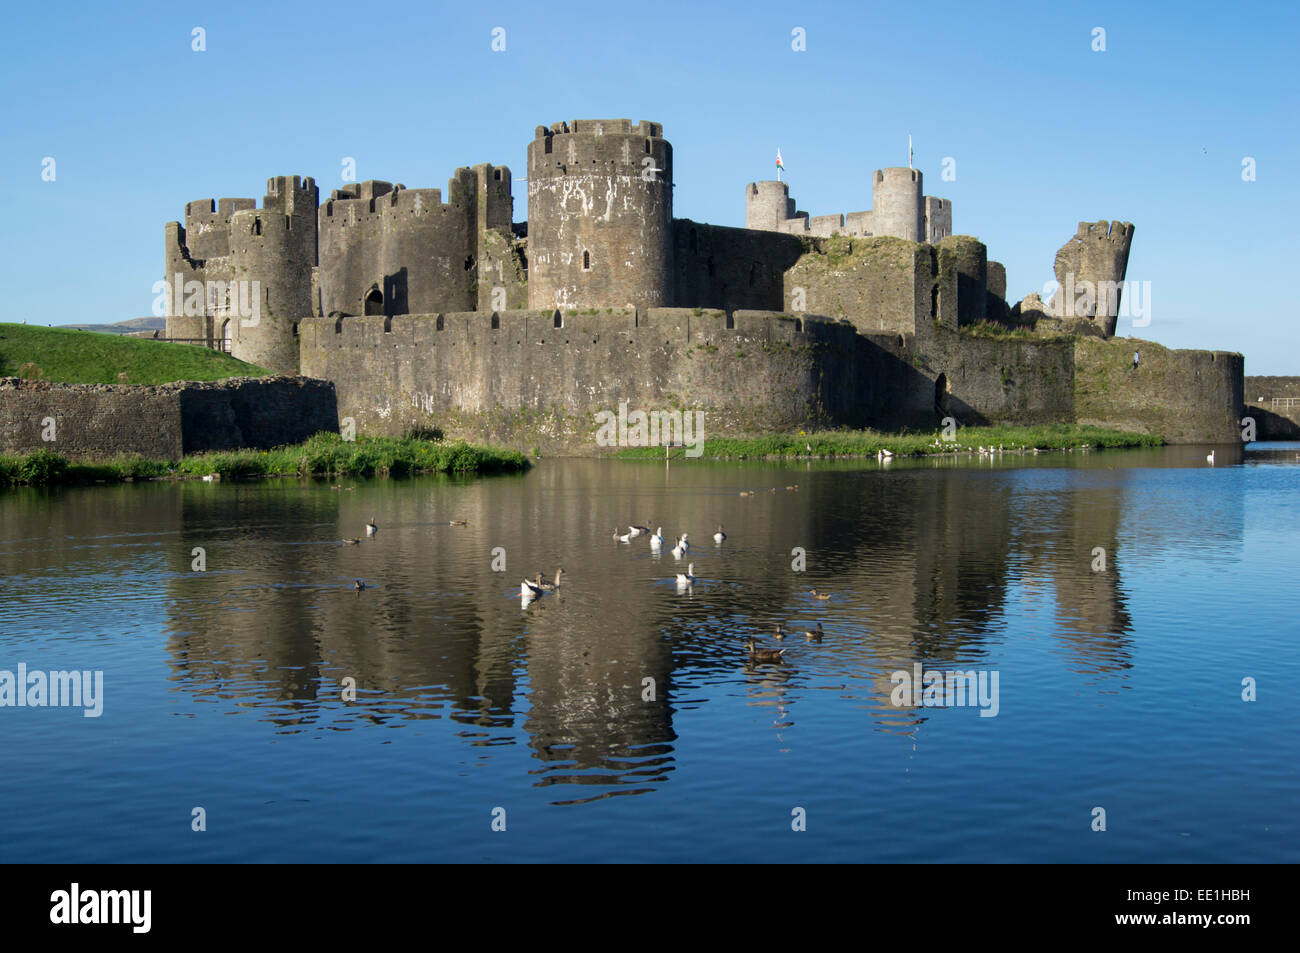 Caerphilly Castle, Caerphilly, Glamorgan, Wales, United Kingdom, Europe - Stock Image